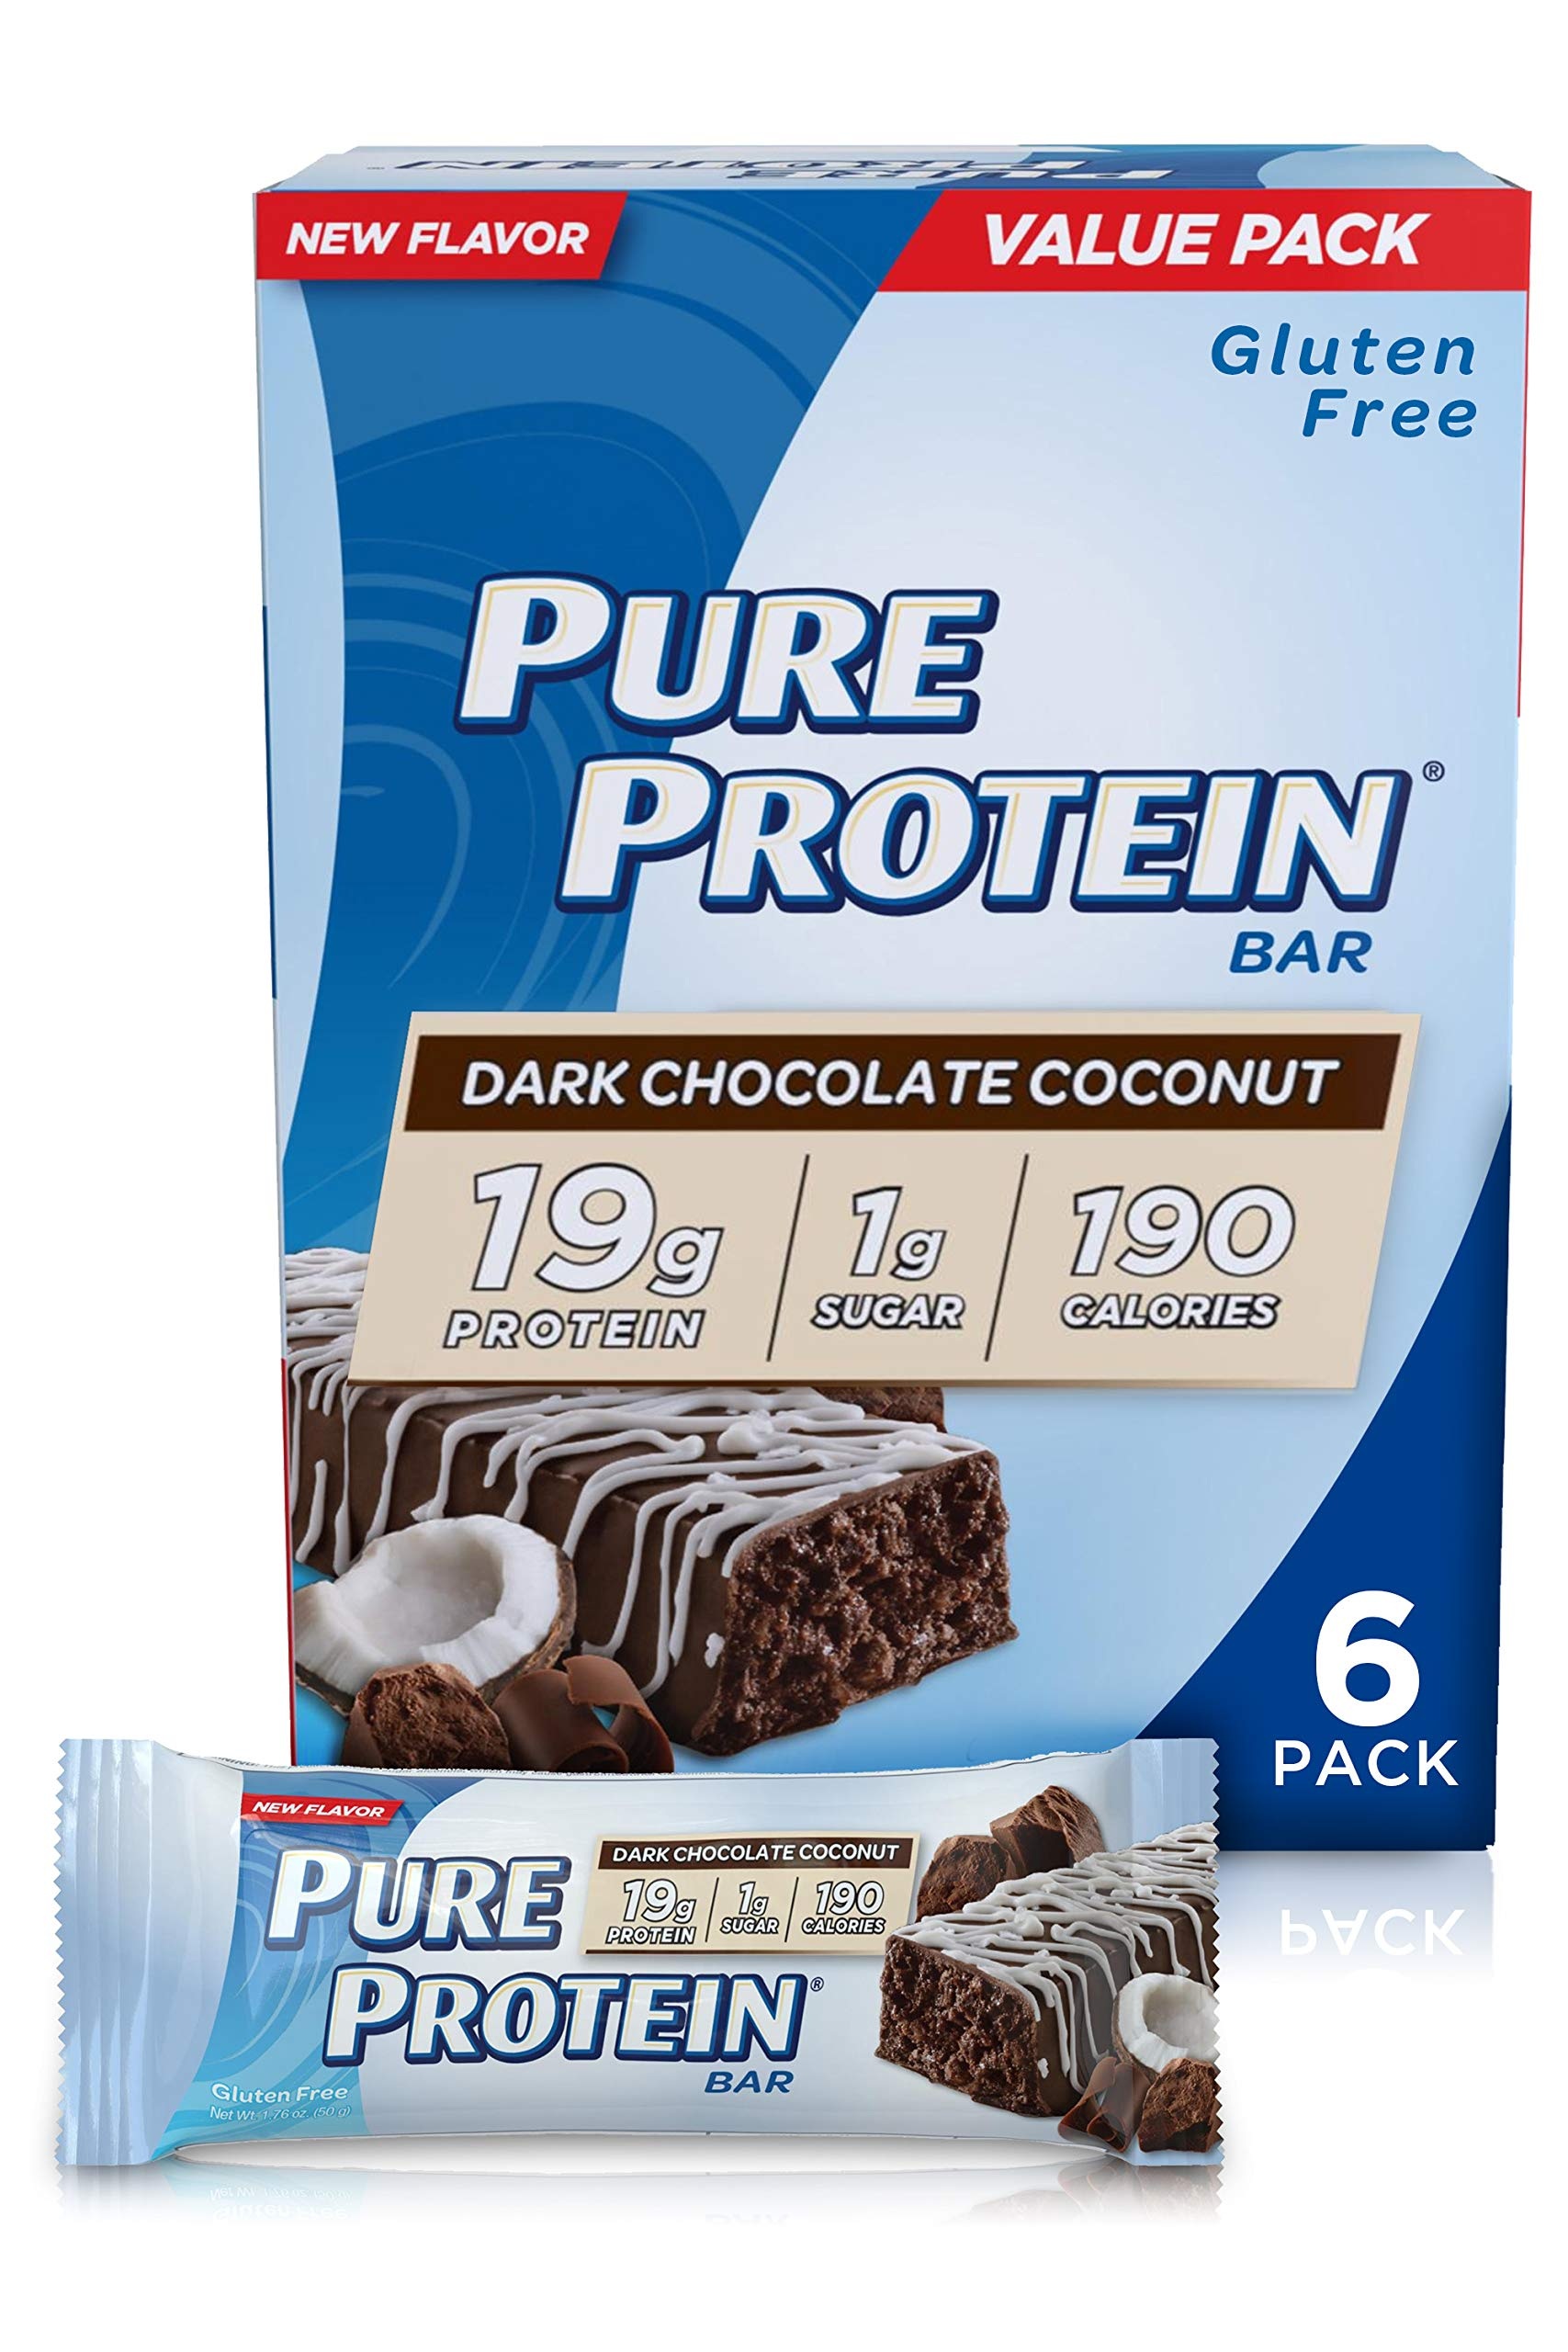 Pure Protein Bars, High Protein, Nutritious Snacks to Support Energy, Low Sugar, Gluten Free, Dark Chocolate Coconut, 1.76oz, 6 Pack